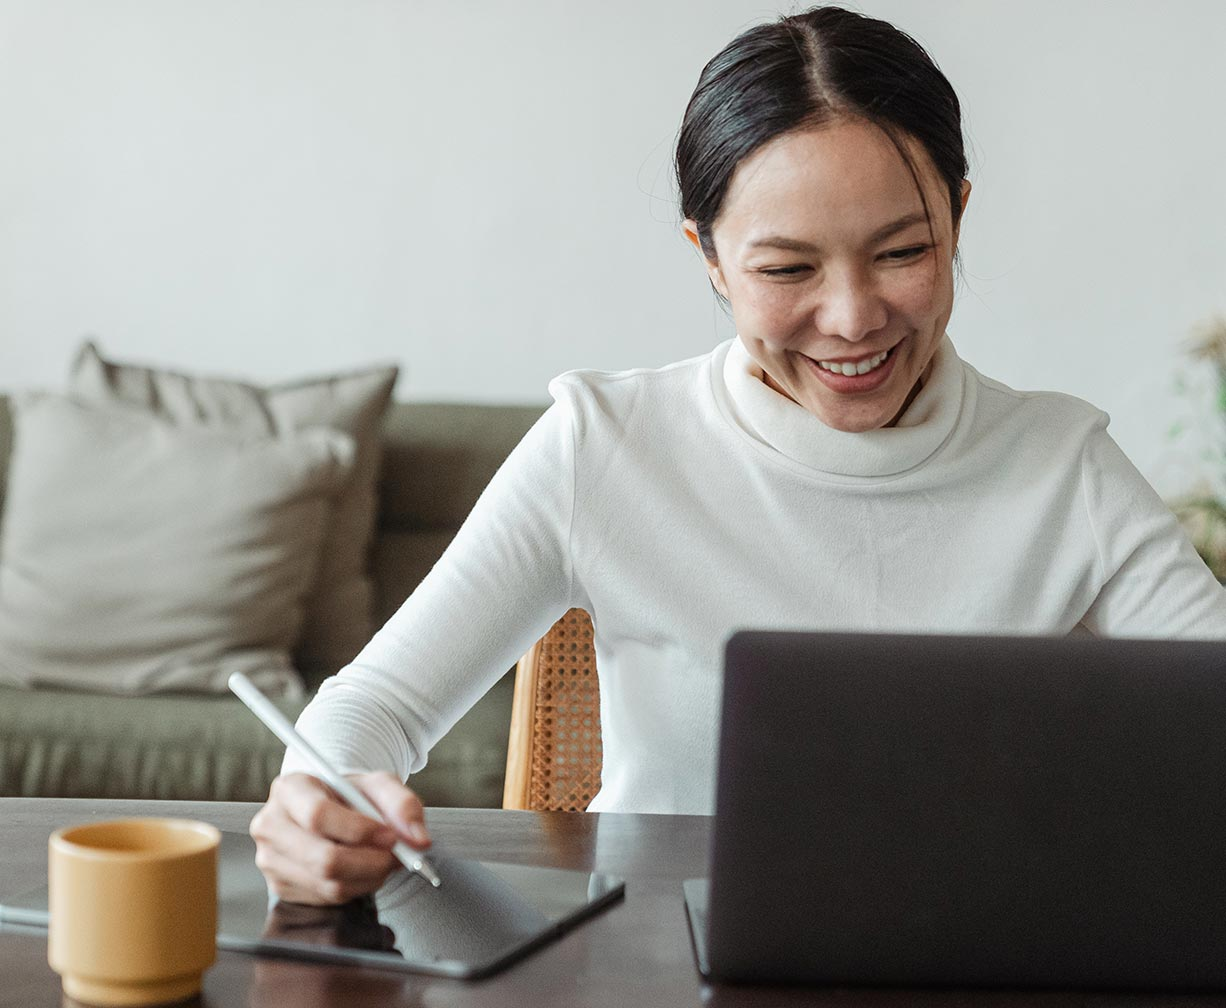 An asian woman smiling at her computer and drawing something on her tablet computer beside her.